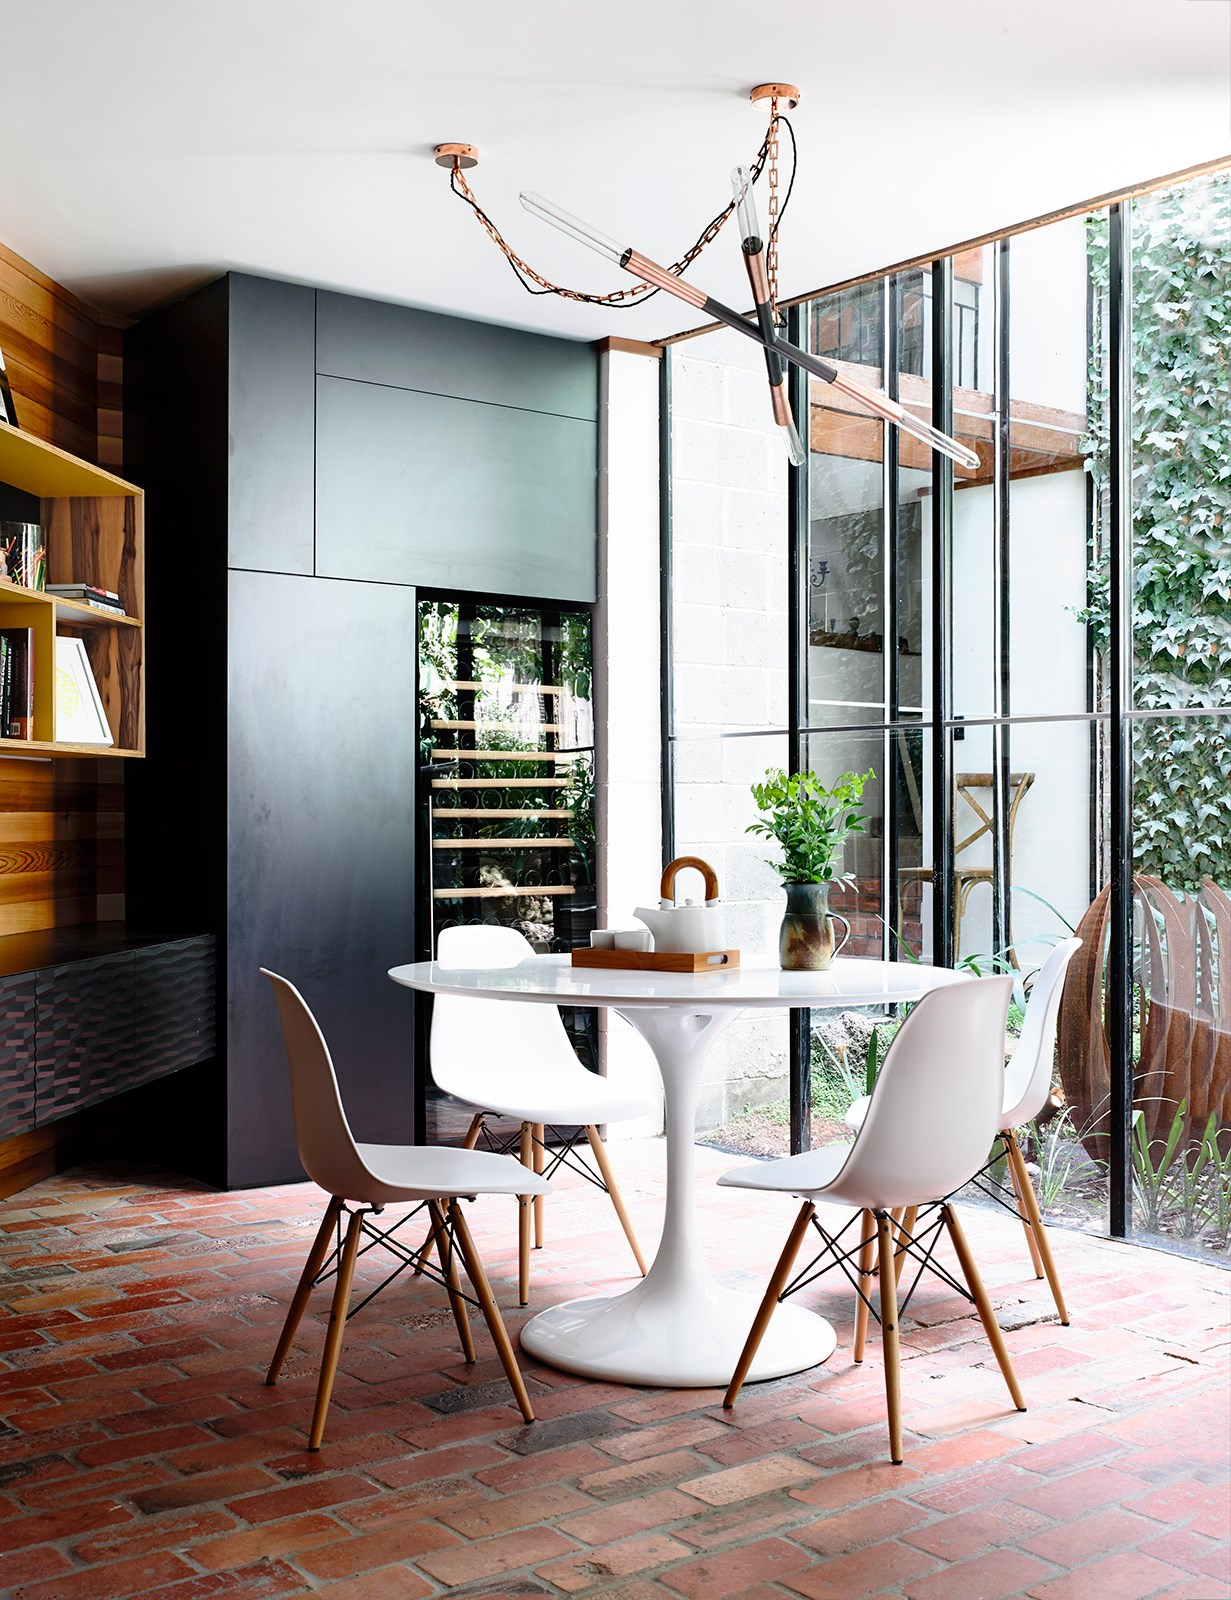 "A spectacular [Christopher Boots](http://www.christopherboots.com/product//?utm_campaign=supplier/|target=""_blank"") **pendant light** steals the show in the dining room of this Melbourne home (above), renovated by [Atticus & Milo](http://www.atticusmilo.com.au//?utm_campaign=supplier/